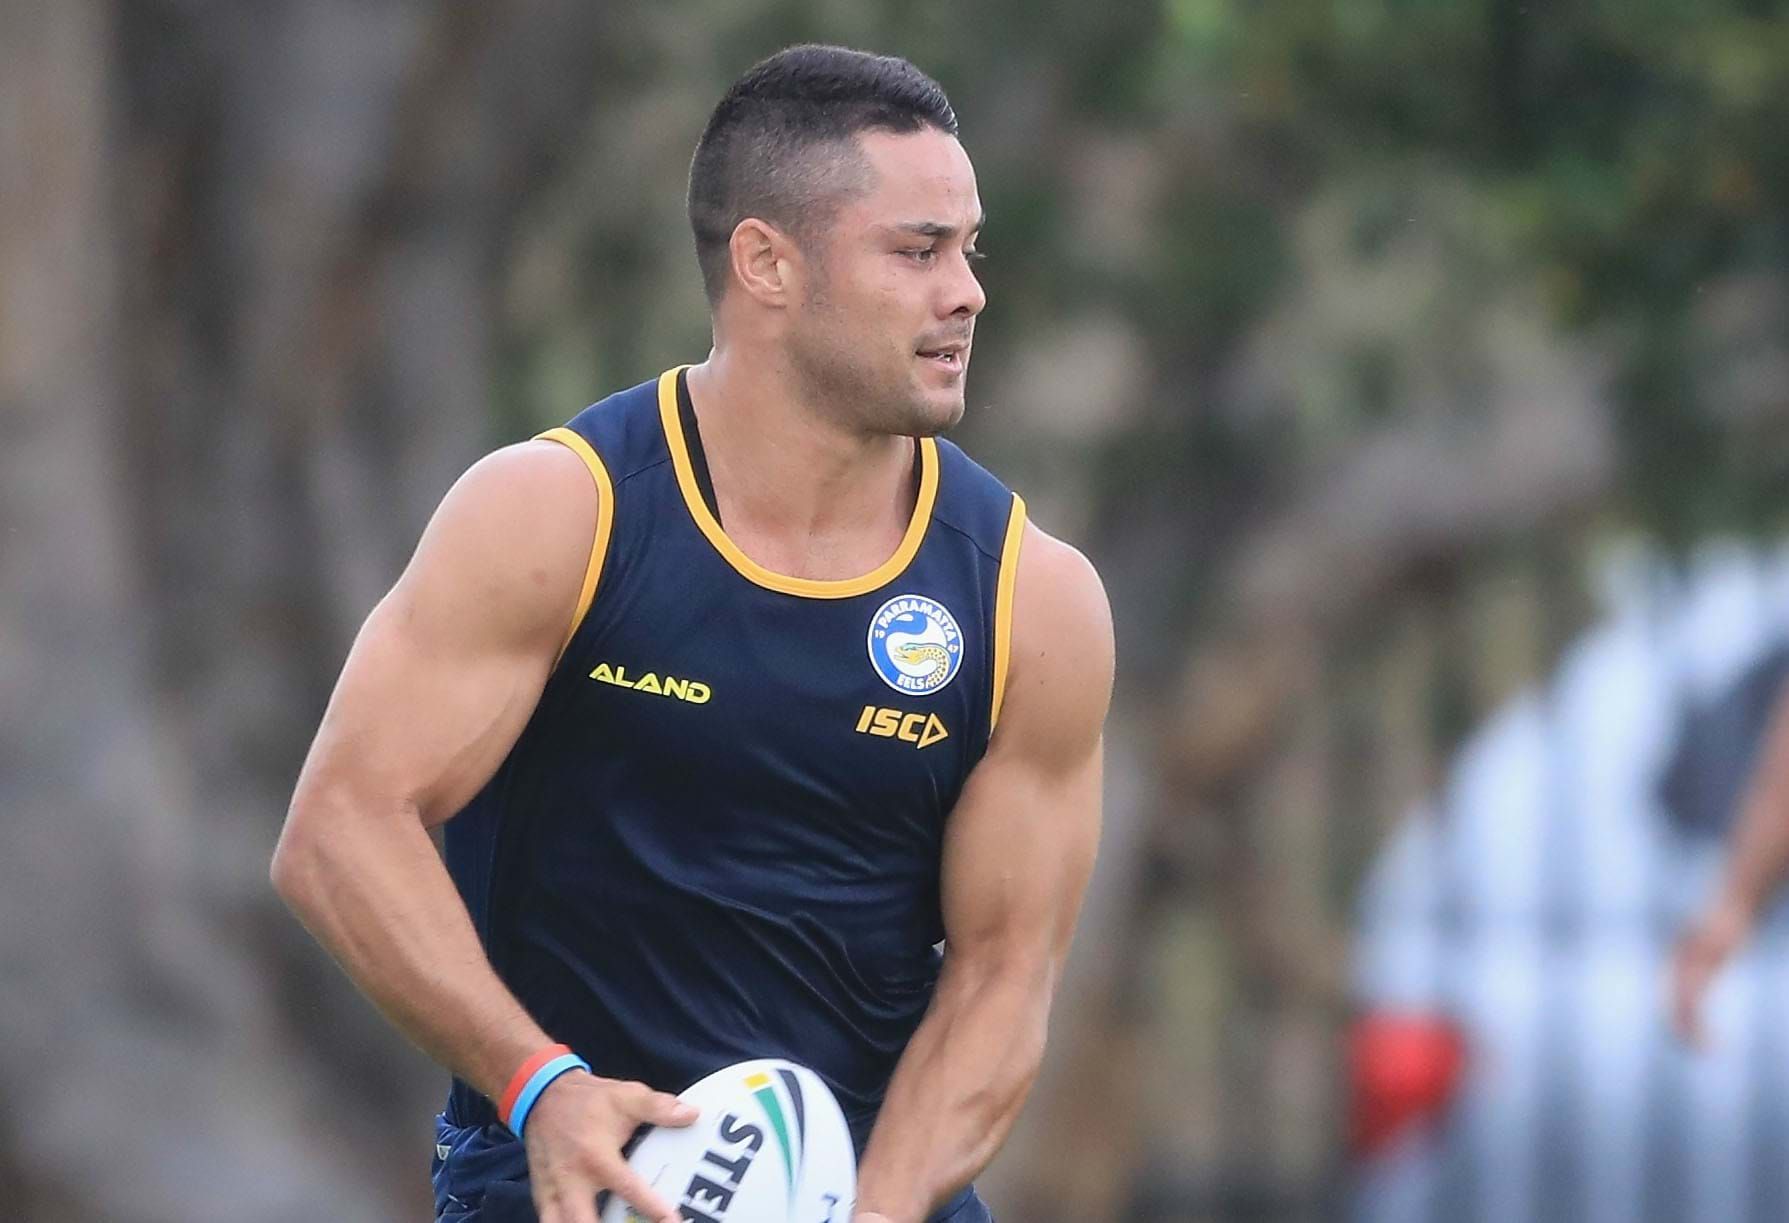 Hayne hires high profile United States lawyer to defend rape allegation